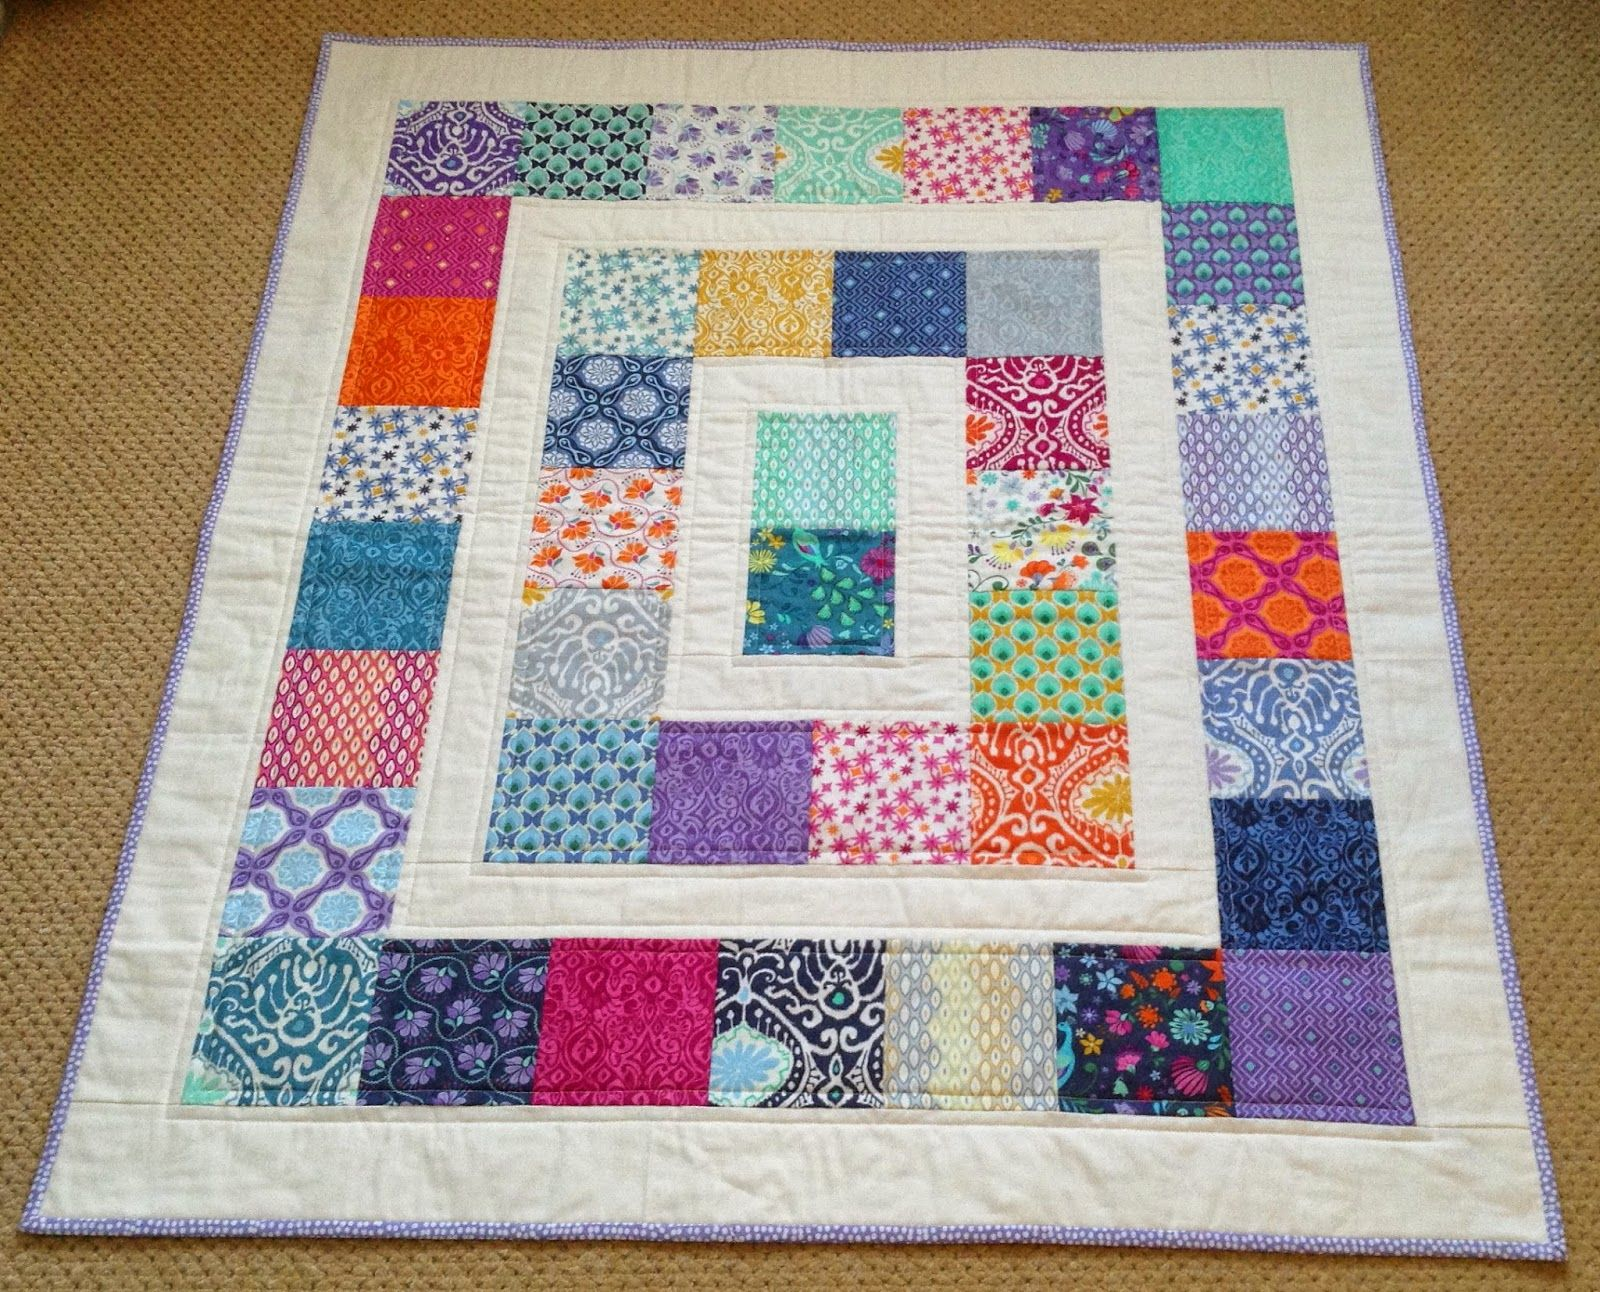 Sew Me: Charm pack quilt | Quilting 15 | Pinterest | Charm pack ... : charm pack quilt patterns - Adamdwight.com